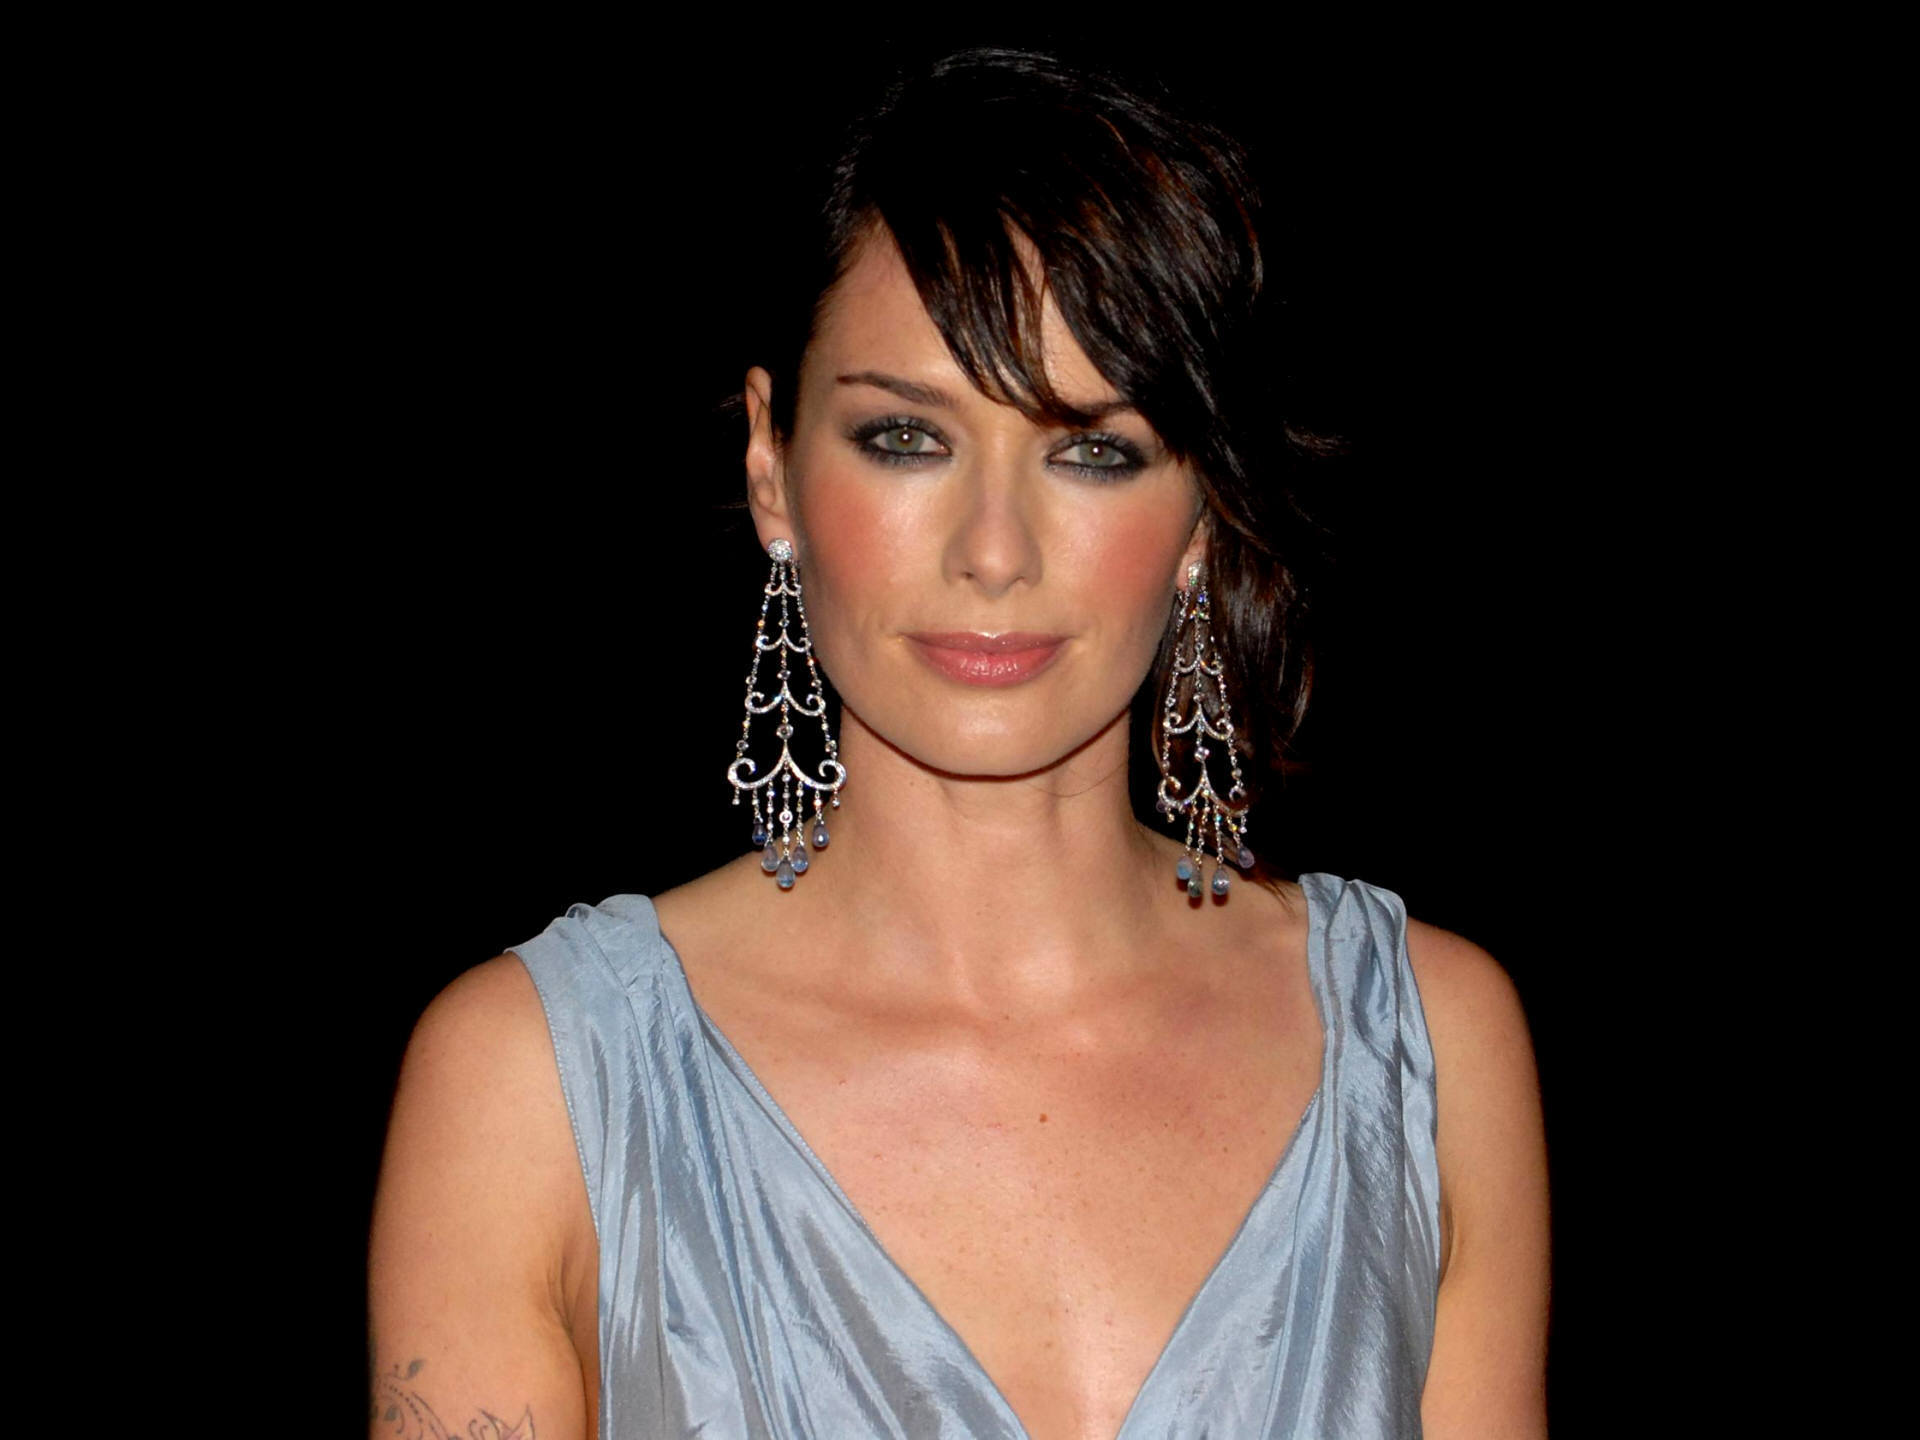 lena headey lena headey wallpaper 2725790 fanpop